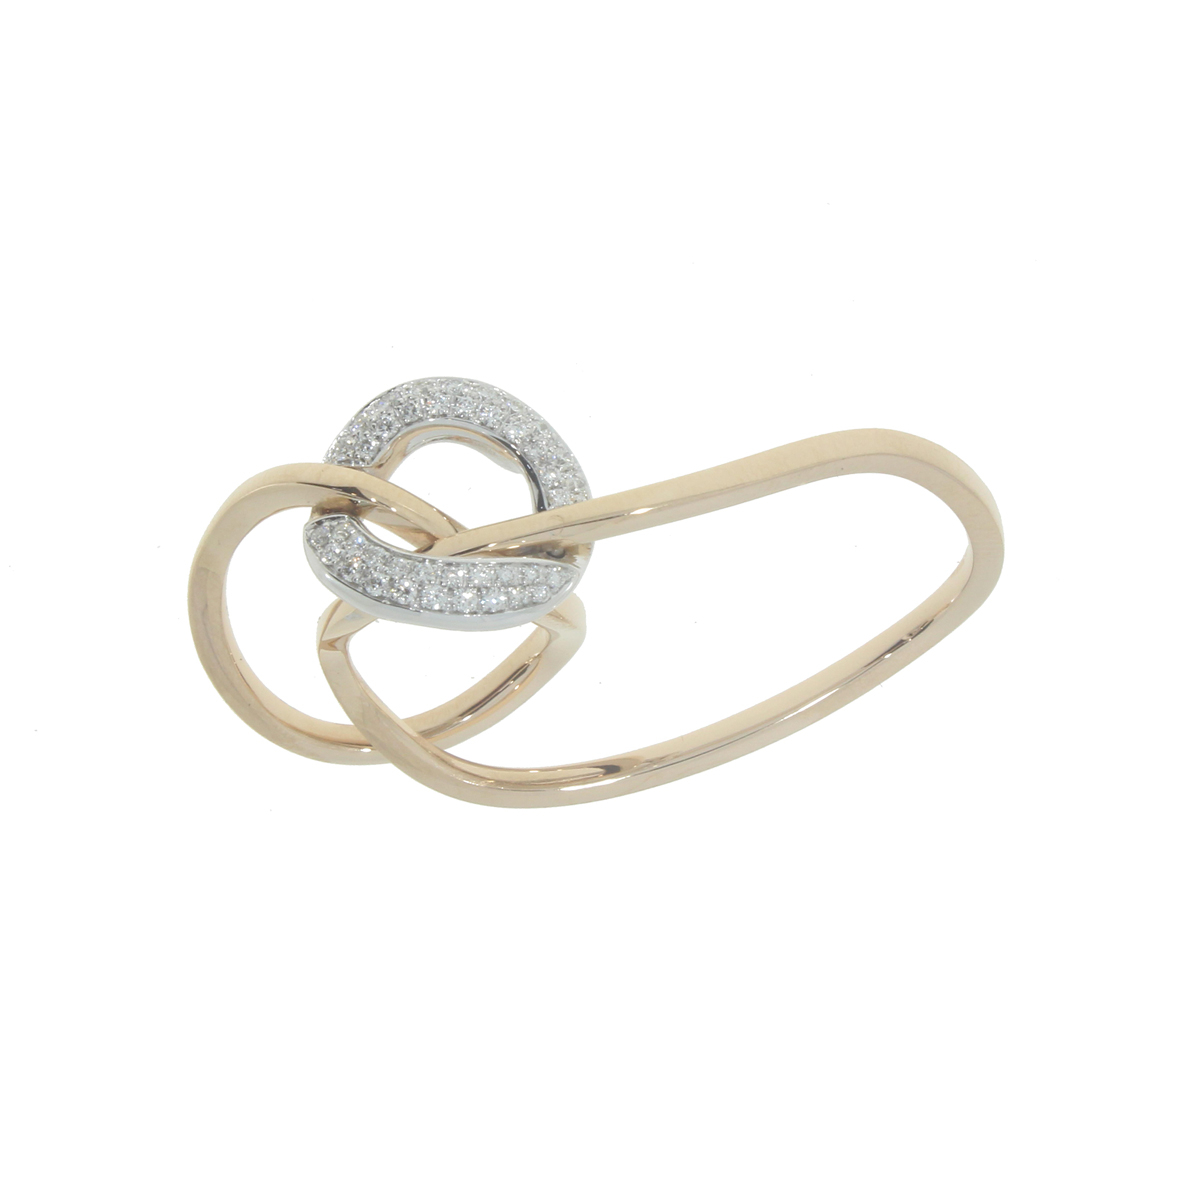 18 Kt Yellow Gold Link Ring with Diamonds